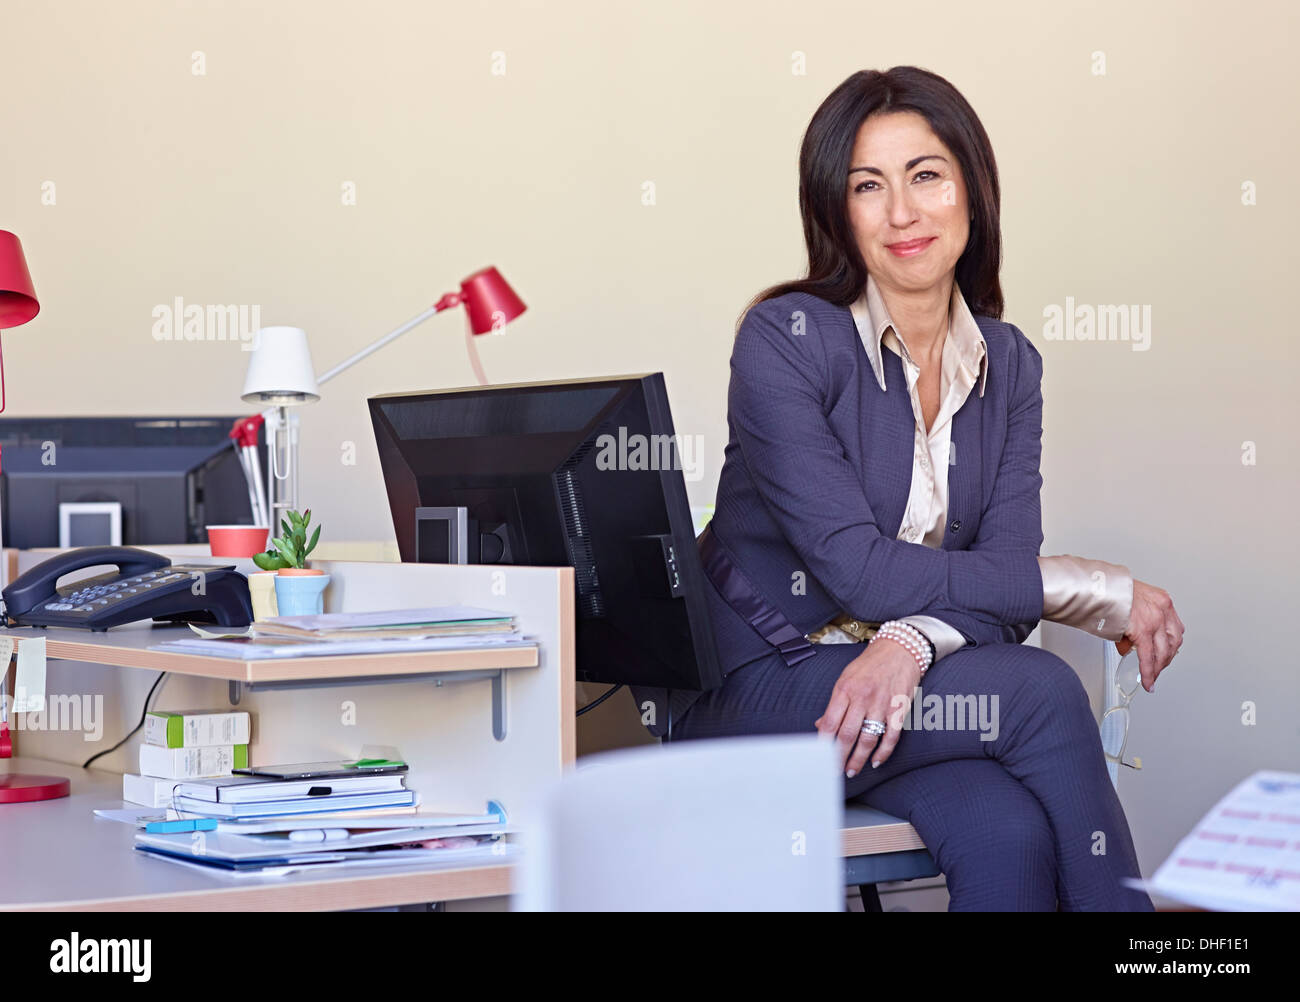 Businesswoman wearing suit sitting at desk Stock Photo